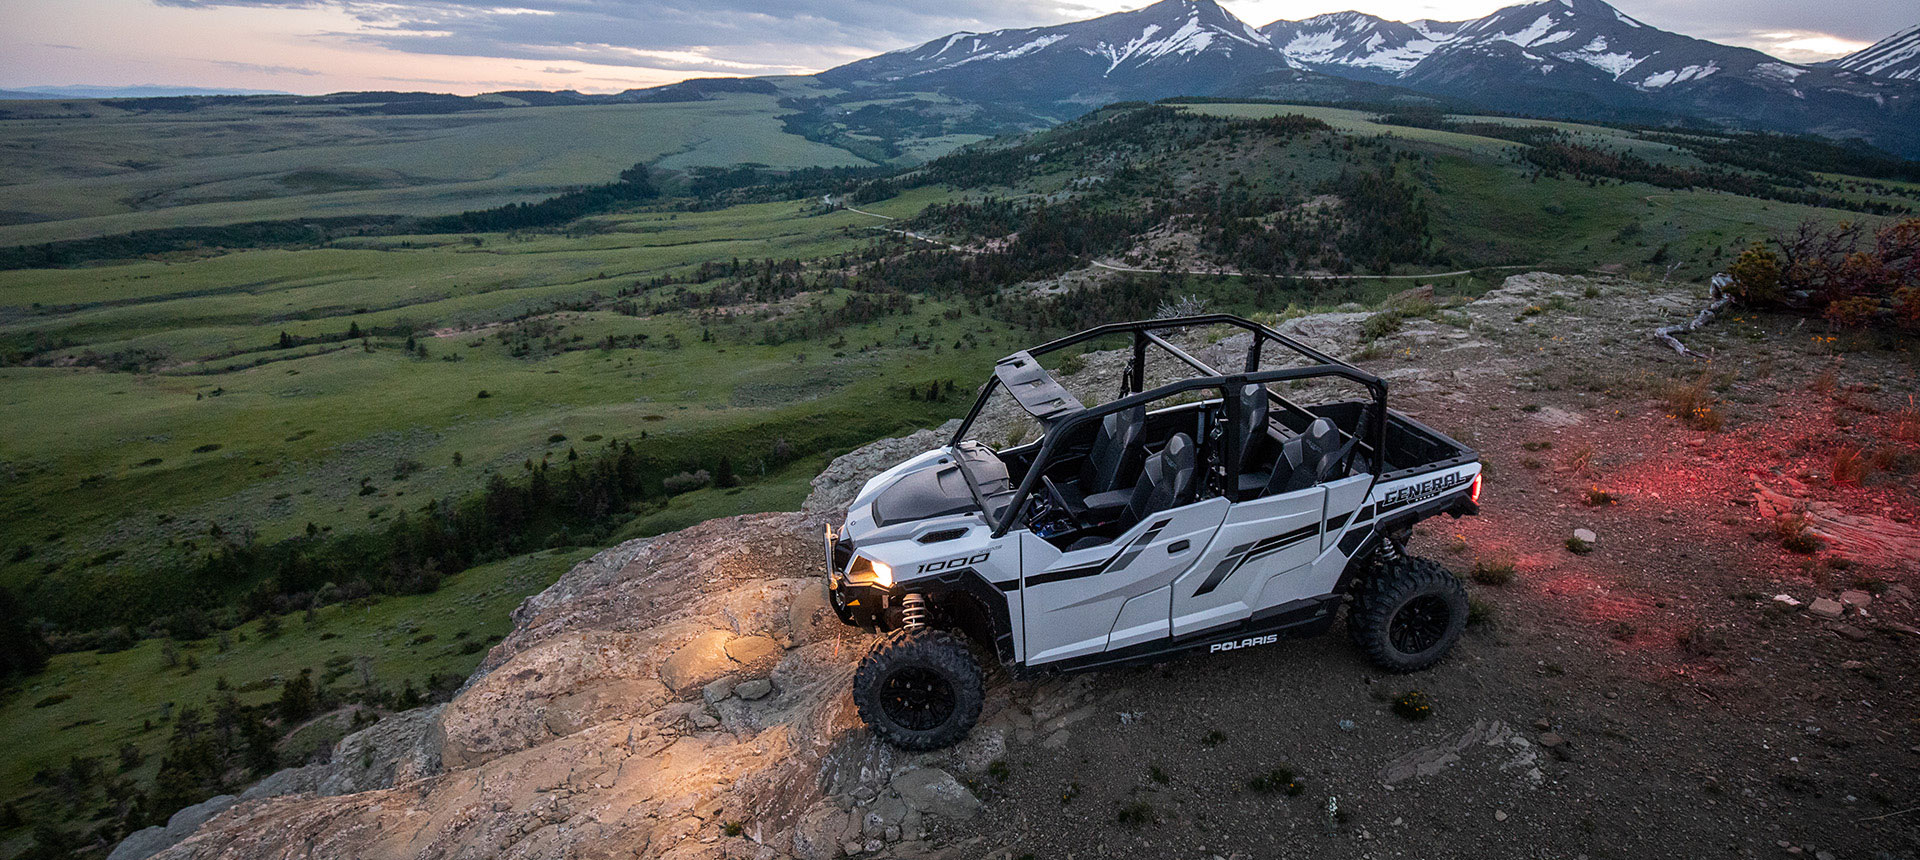 Polaris General parked on a mountain top